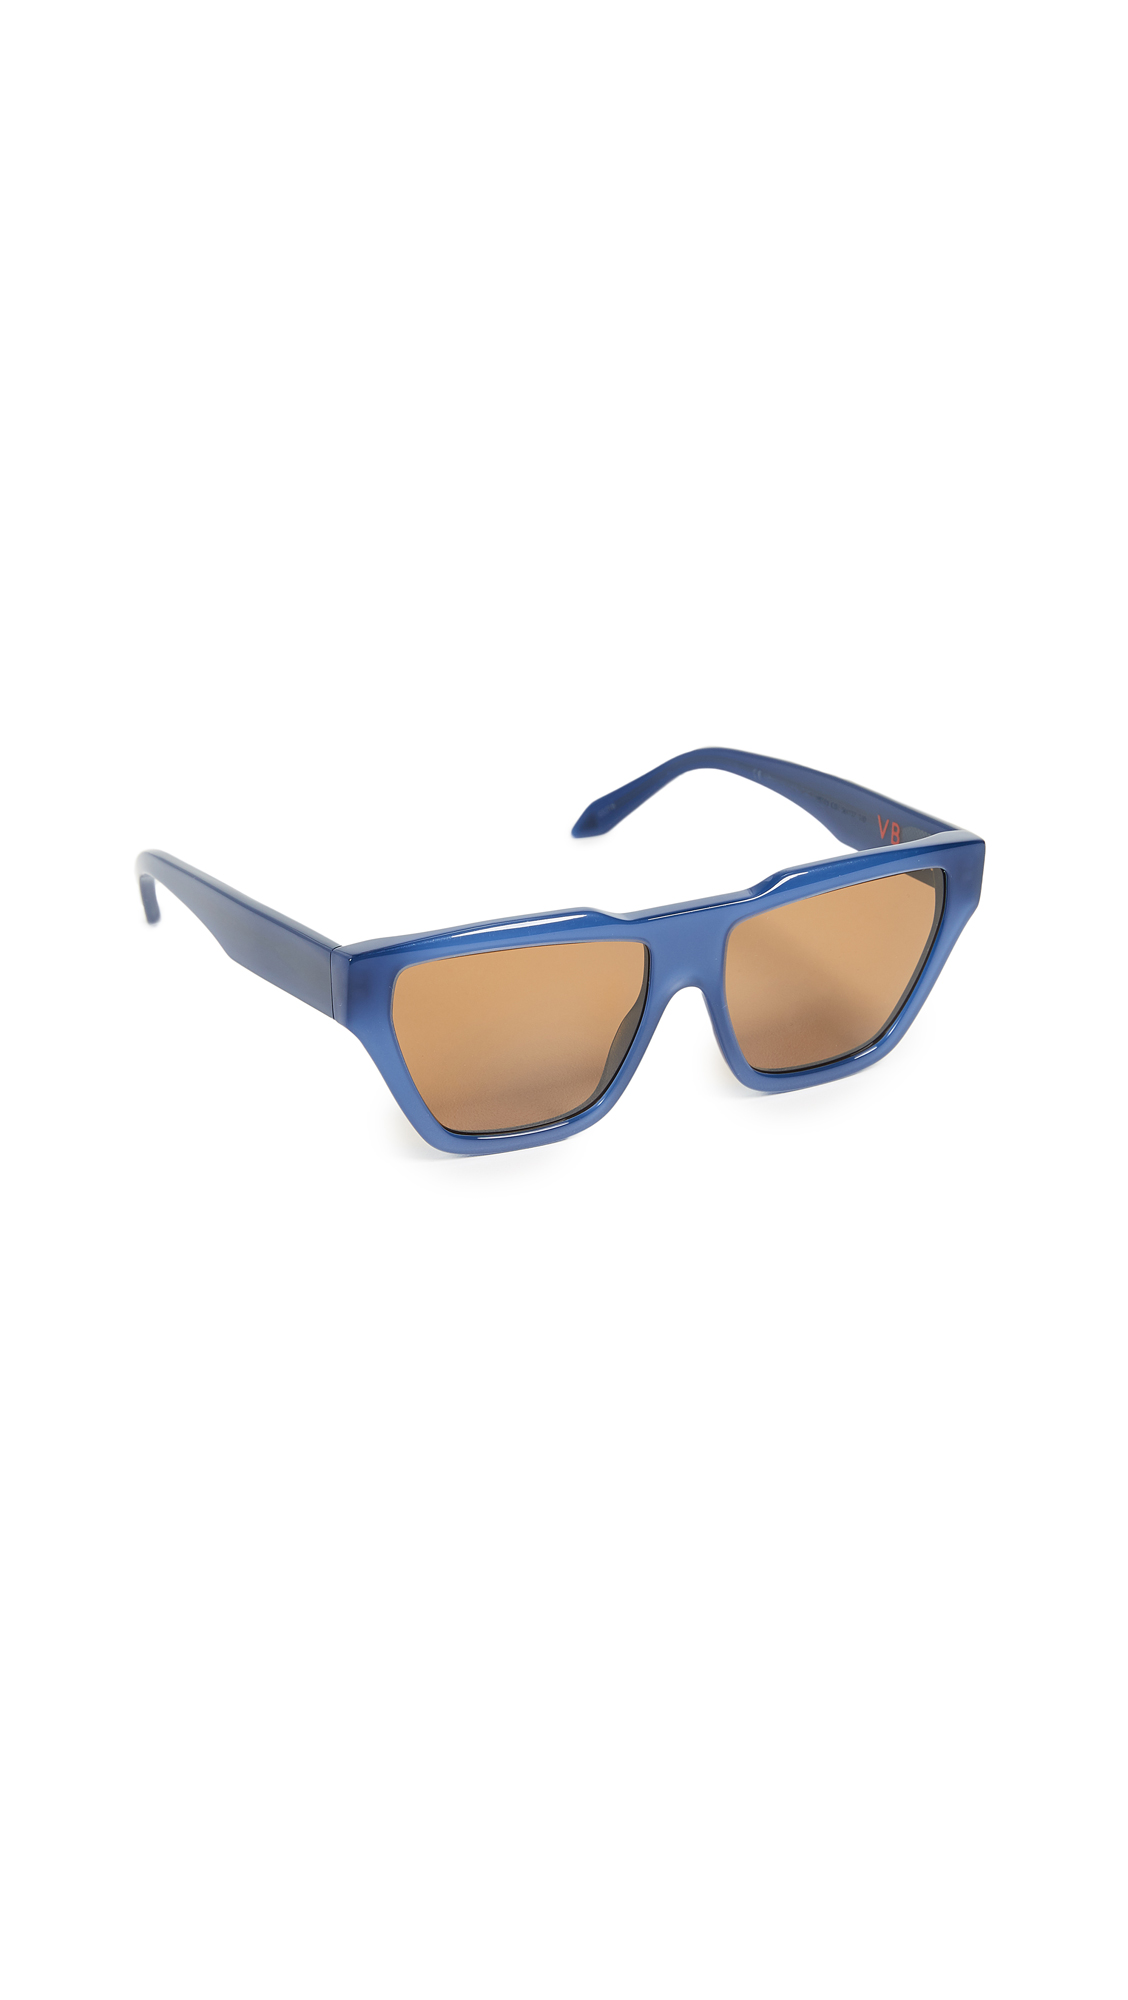 Victoria Beckham Square Cat Sunglasses - Dark Navy